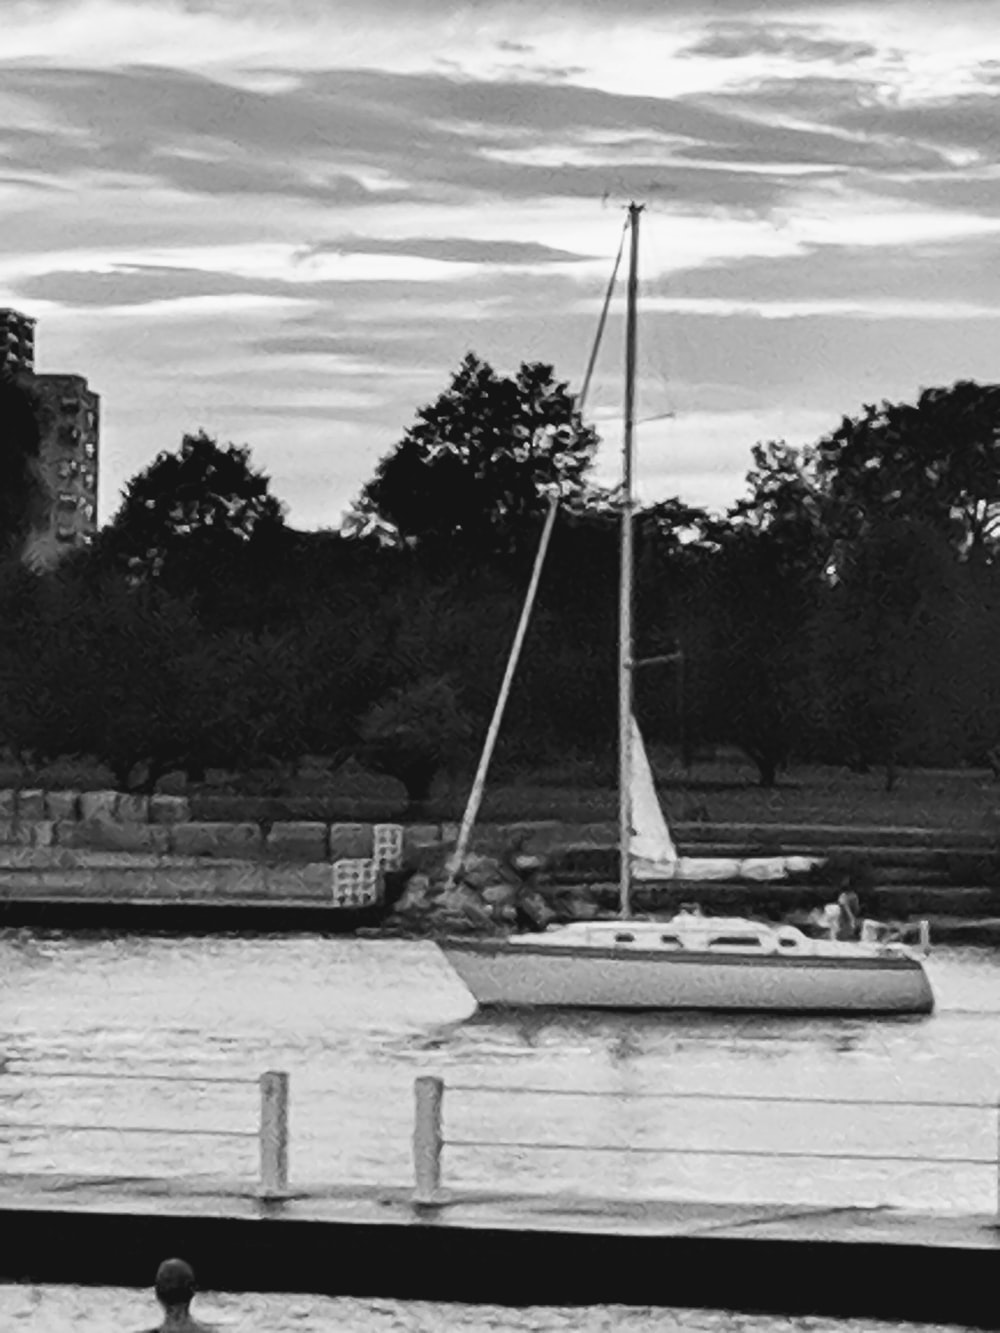 grayscale photo of sailboat on dock